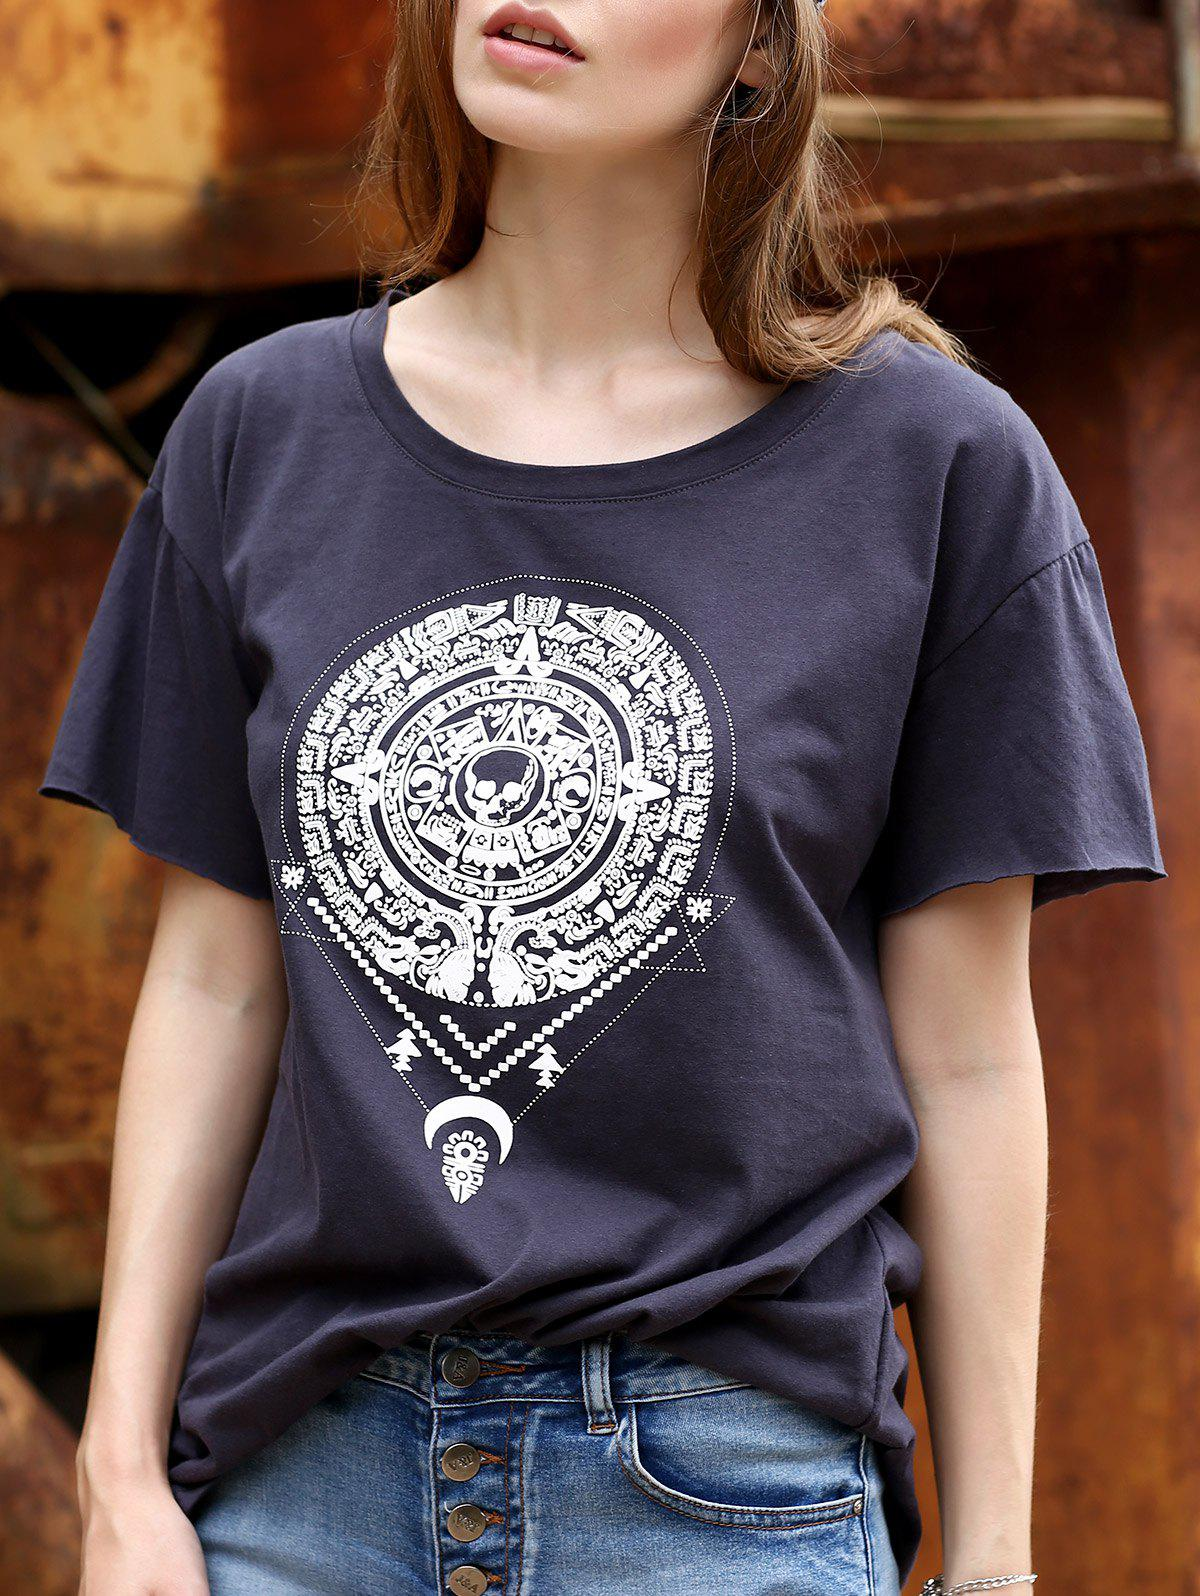 Chic Tribe Pattern Jewel Neck T-Shirt For Women - CADETBLUE XL